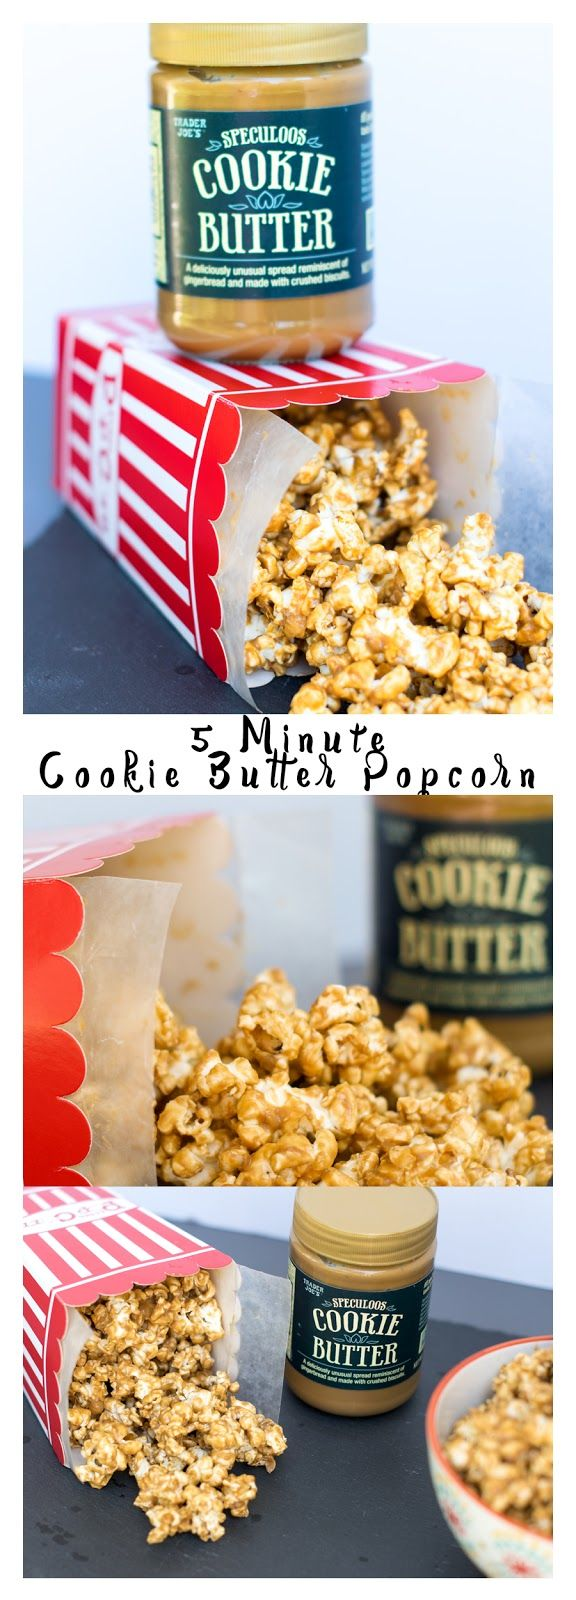 Amazing 5 minute Cookie Butter Popcorn Recipe! Your friends will think it's a gourmet recipe. Features Speculoos Cookie Butter from Trader Joe's. #recipe #popcorn #snack #cookiebutter